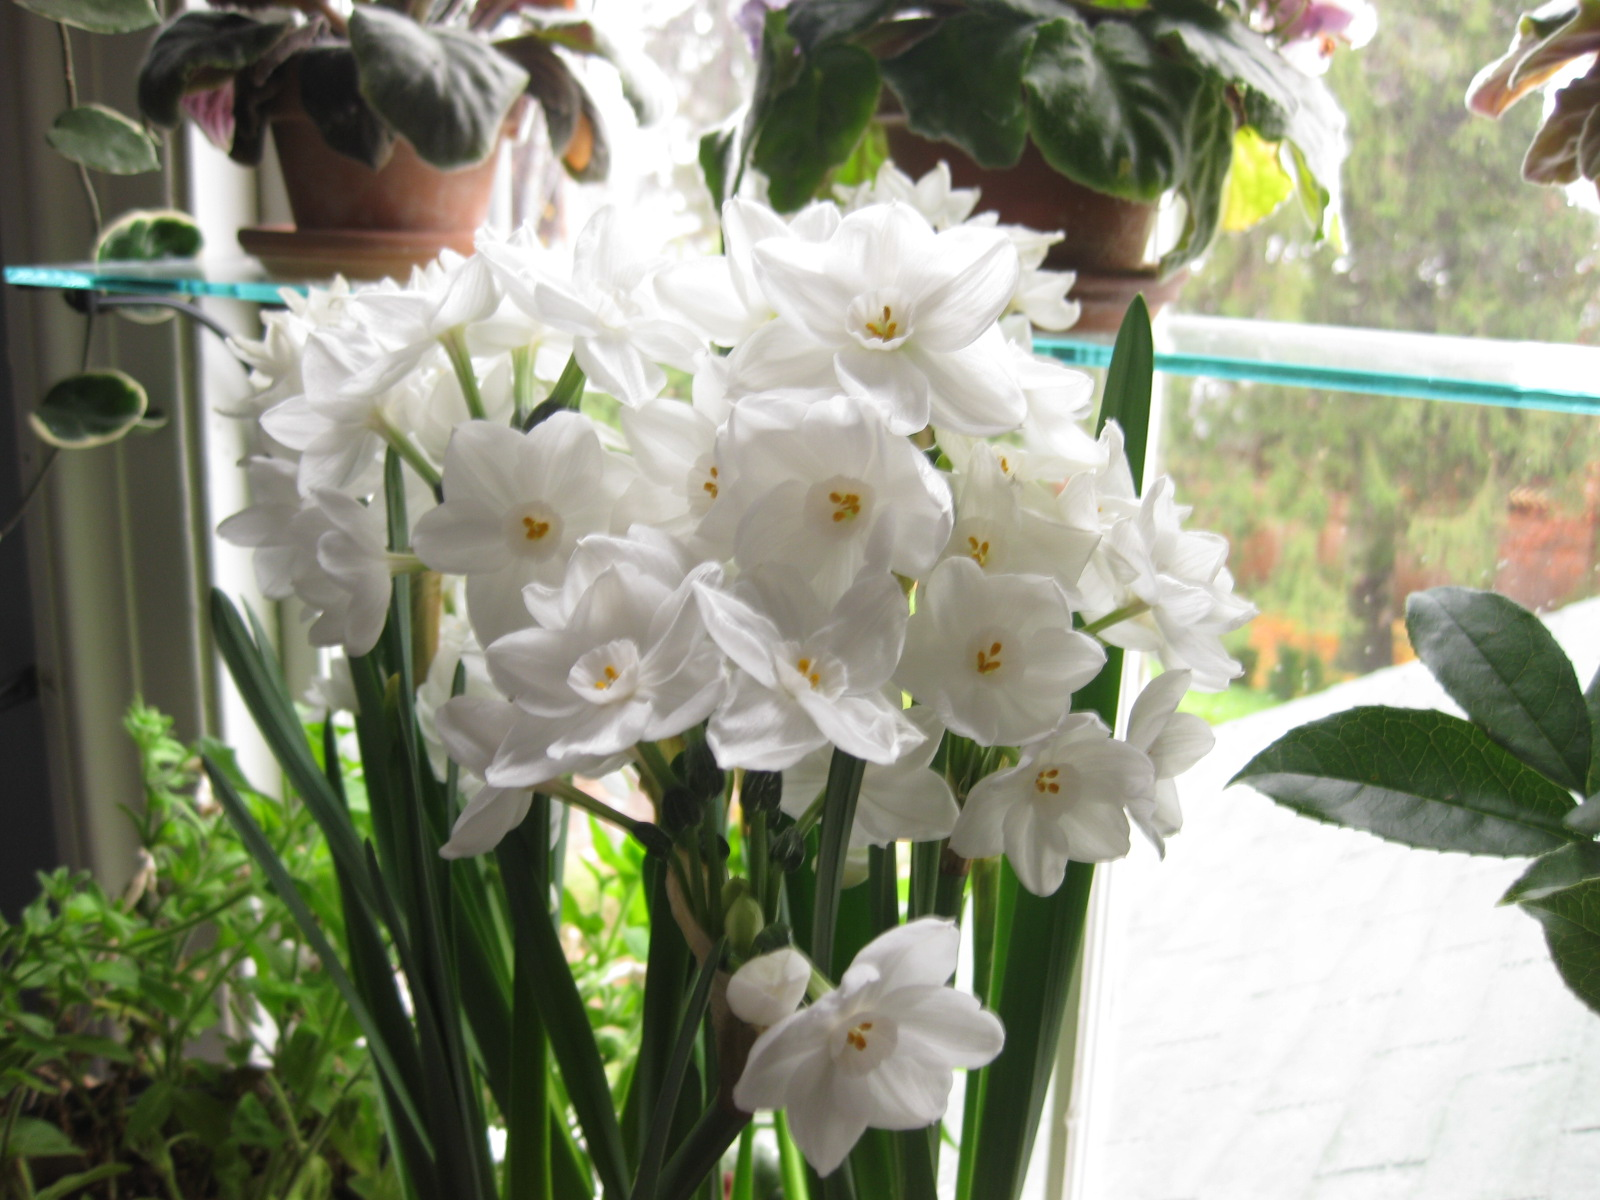 Pickled paperwhites narcissus grandiflora although most garden centers sell the standard ziva paperwhite there are other varieties worth trying i love ariel above and also nir for their mightylinksfo